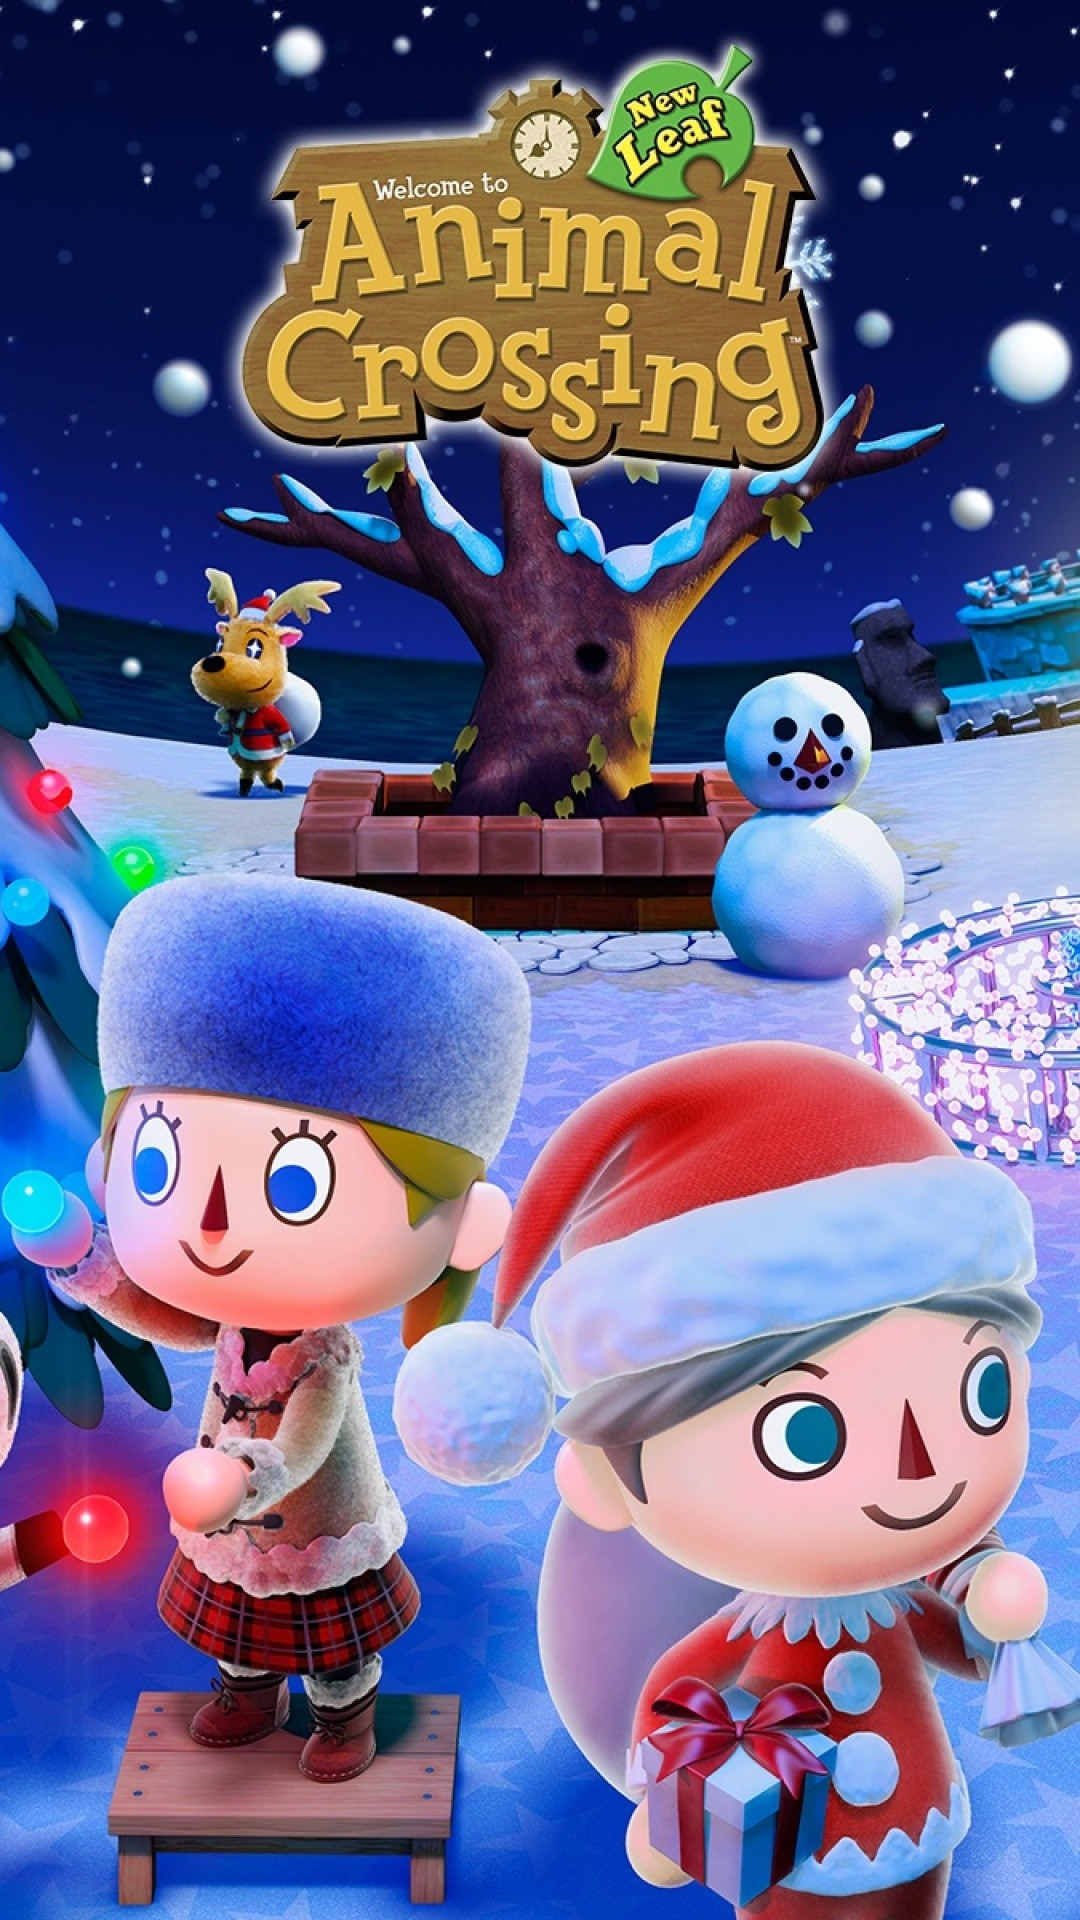 Animal crossing wallpapers 76 pictures - Animal crossing iphone wallpaper ...